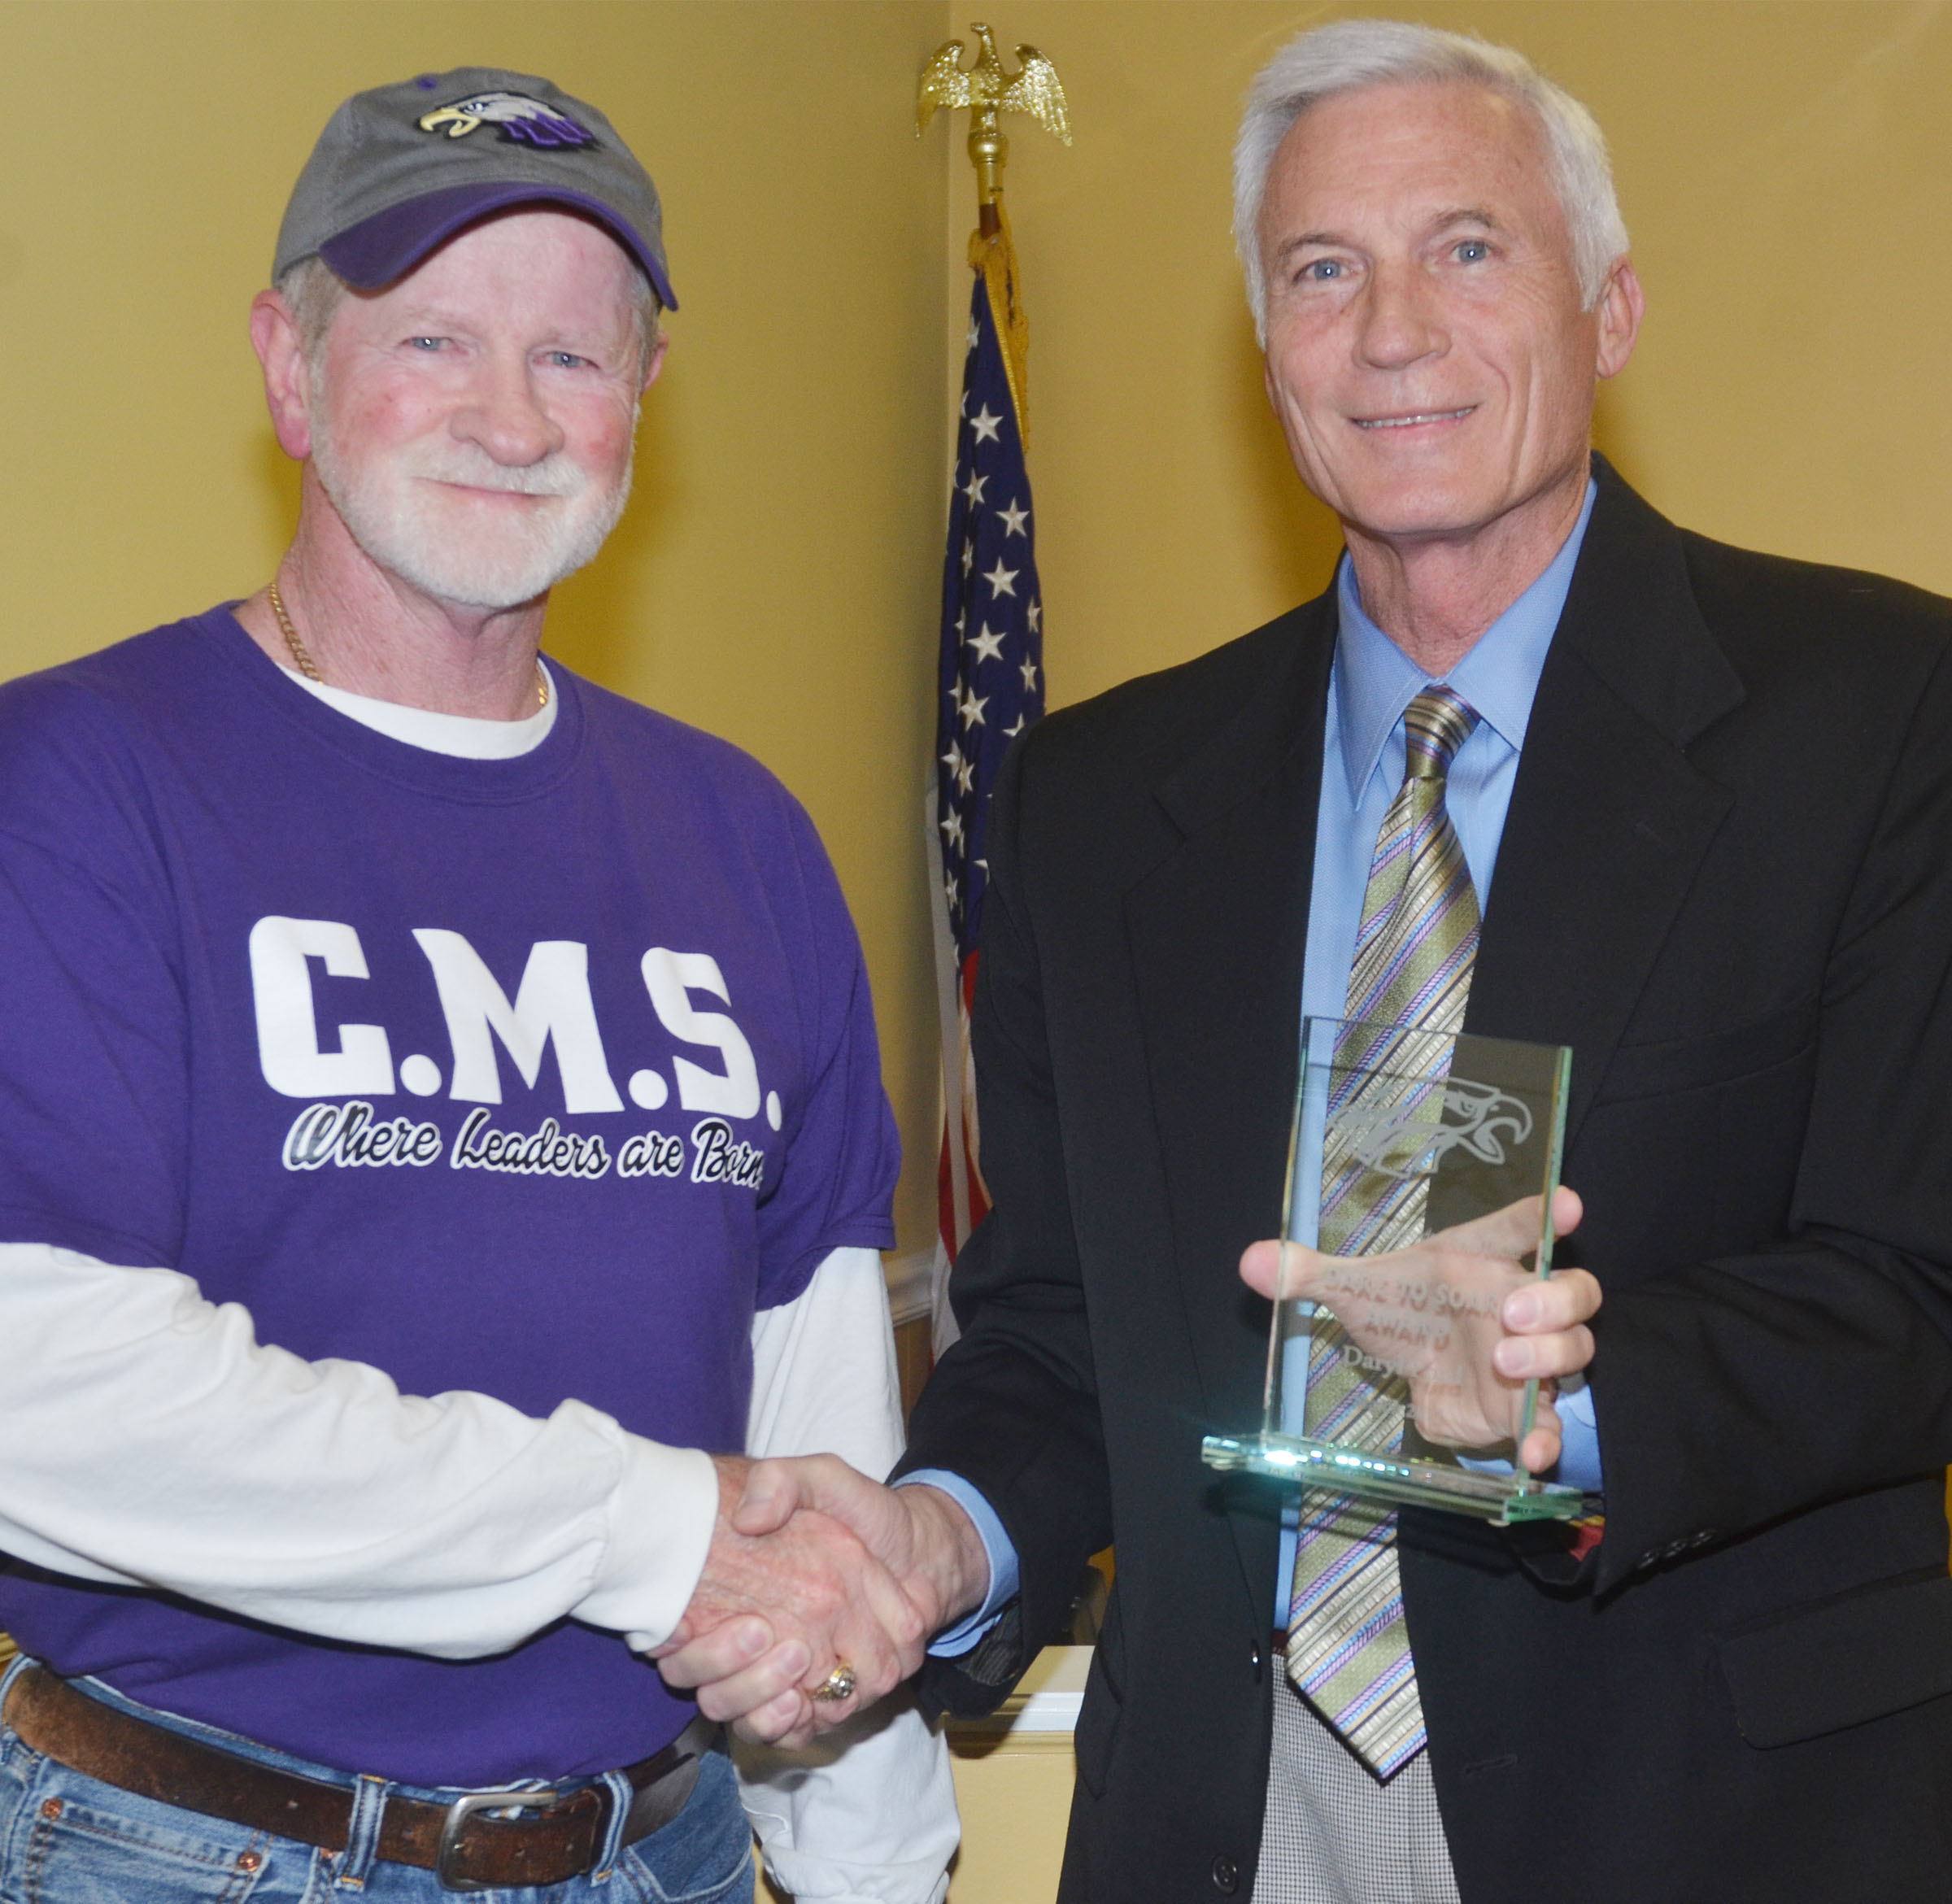 CMS custodian Daryl Ford, at left, received the Dare to Soar award at the Campbellsville Board of Education's regular meeting on Monday, March 13. Campbellsville Independent Schools Superintendent Mike Deaton made the presentation.